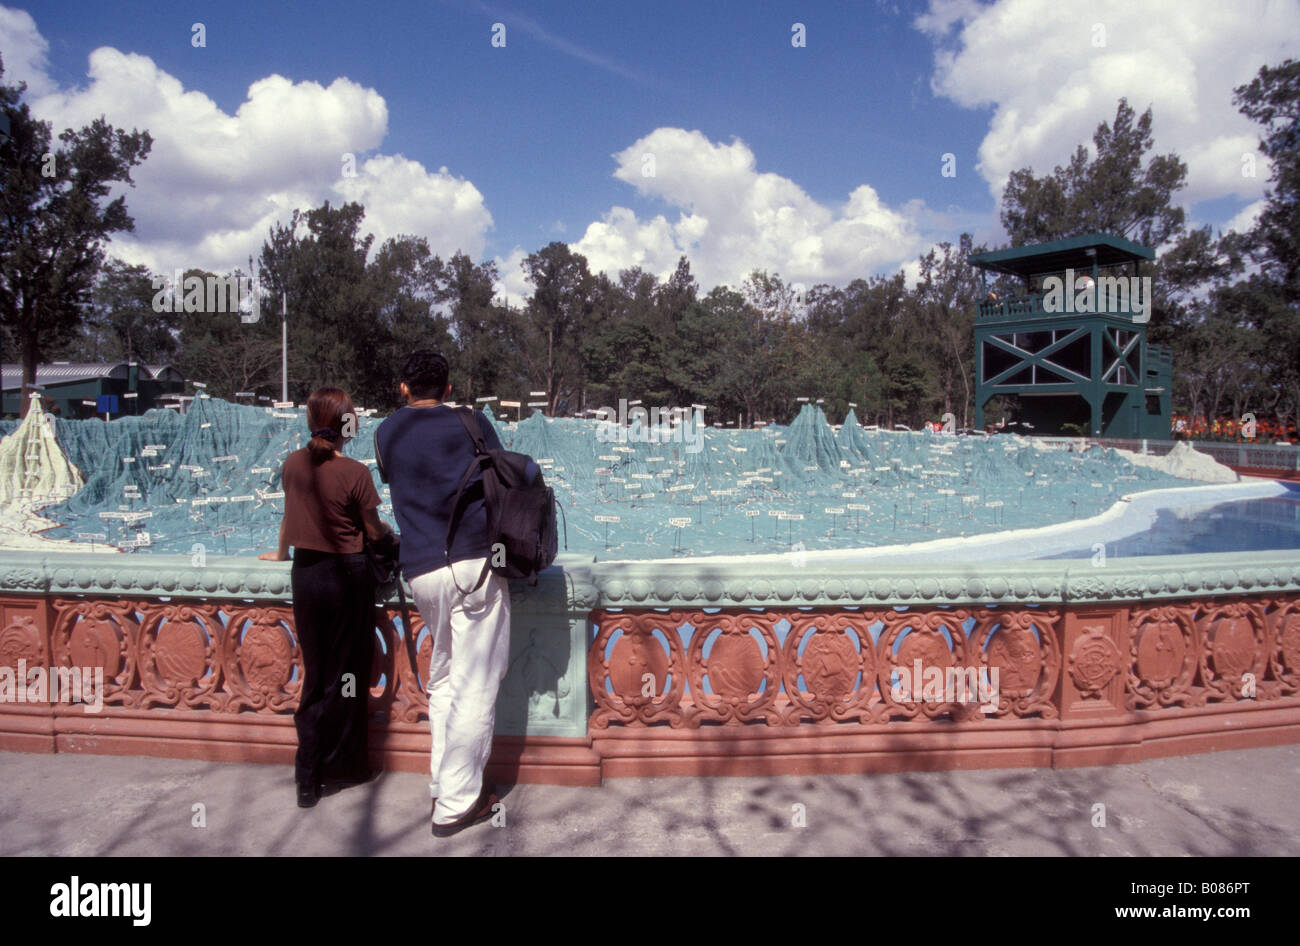 Young couple looking at the Mapa en Relieve, a giant relief map of Guatemala in Parque Minerva, Guatemala City - Stock Image